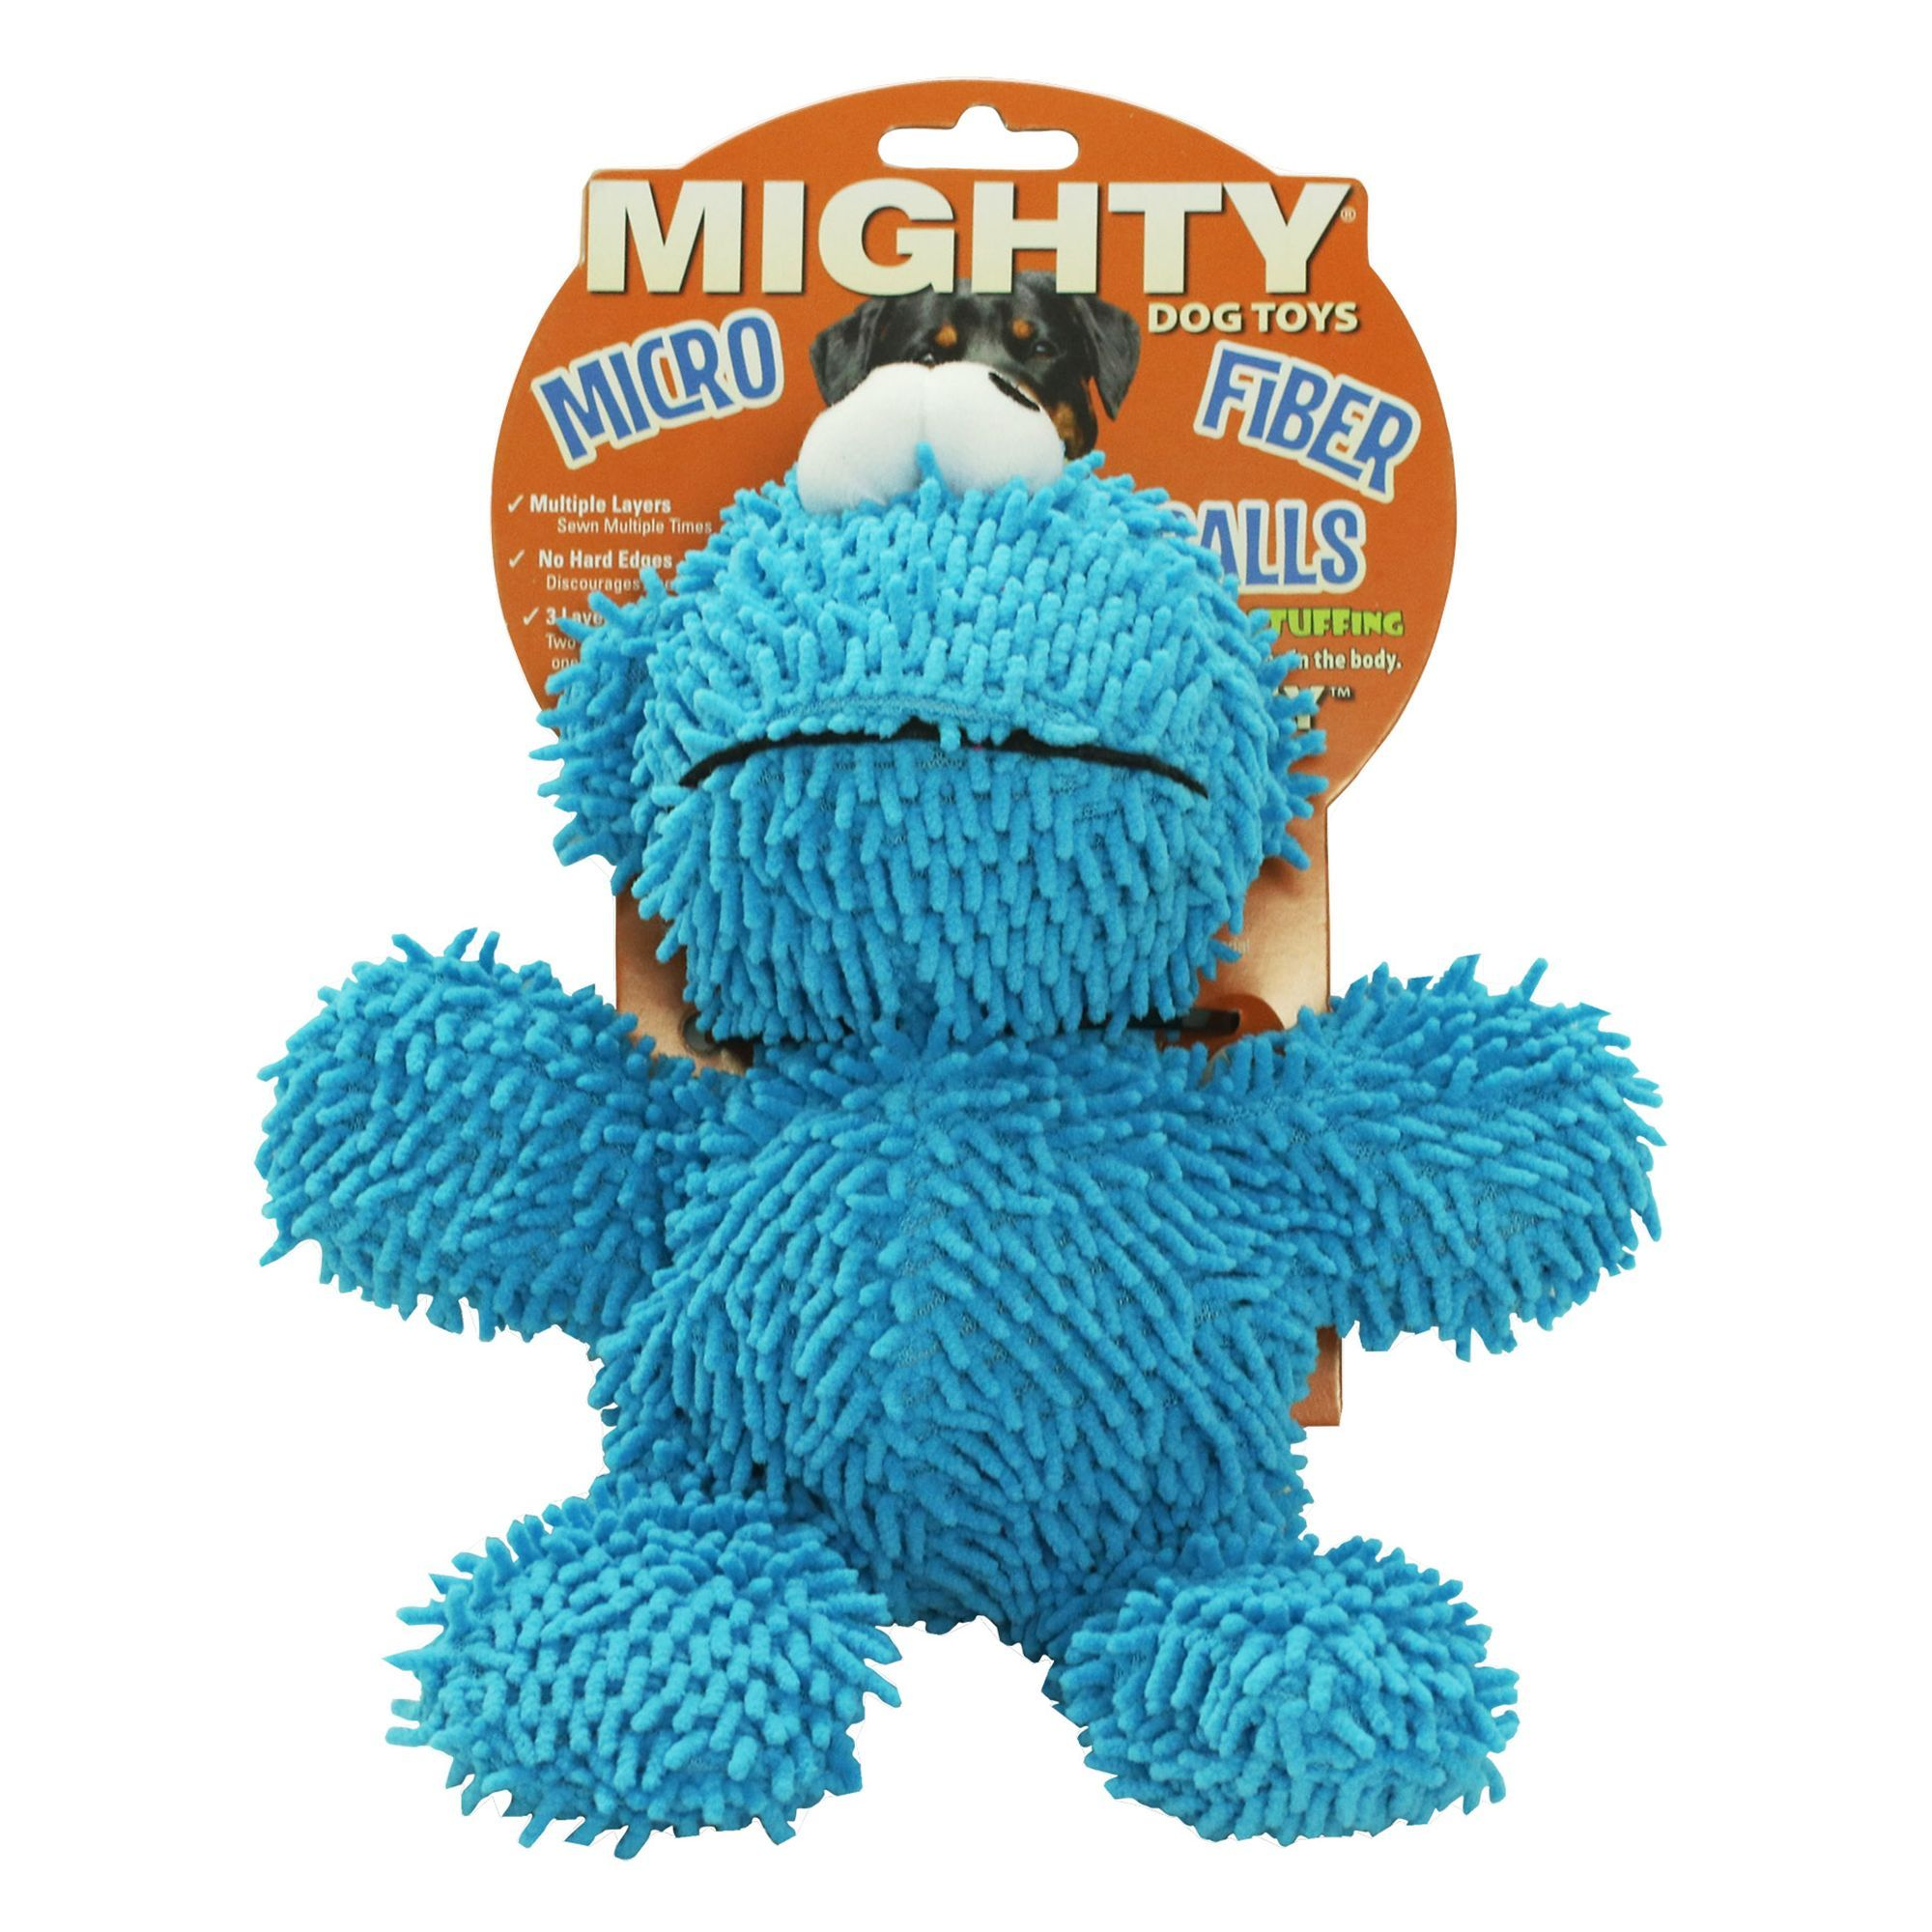 Mighty Dog Toys Microfiber Ball Monster Dog Toy Plush Squeaker